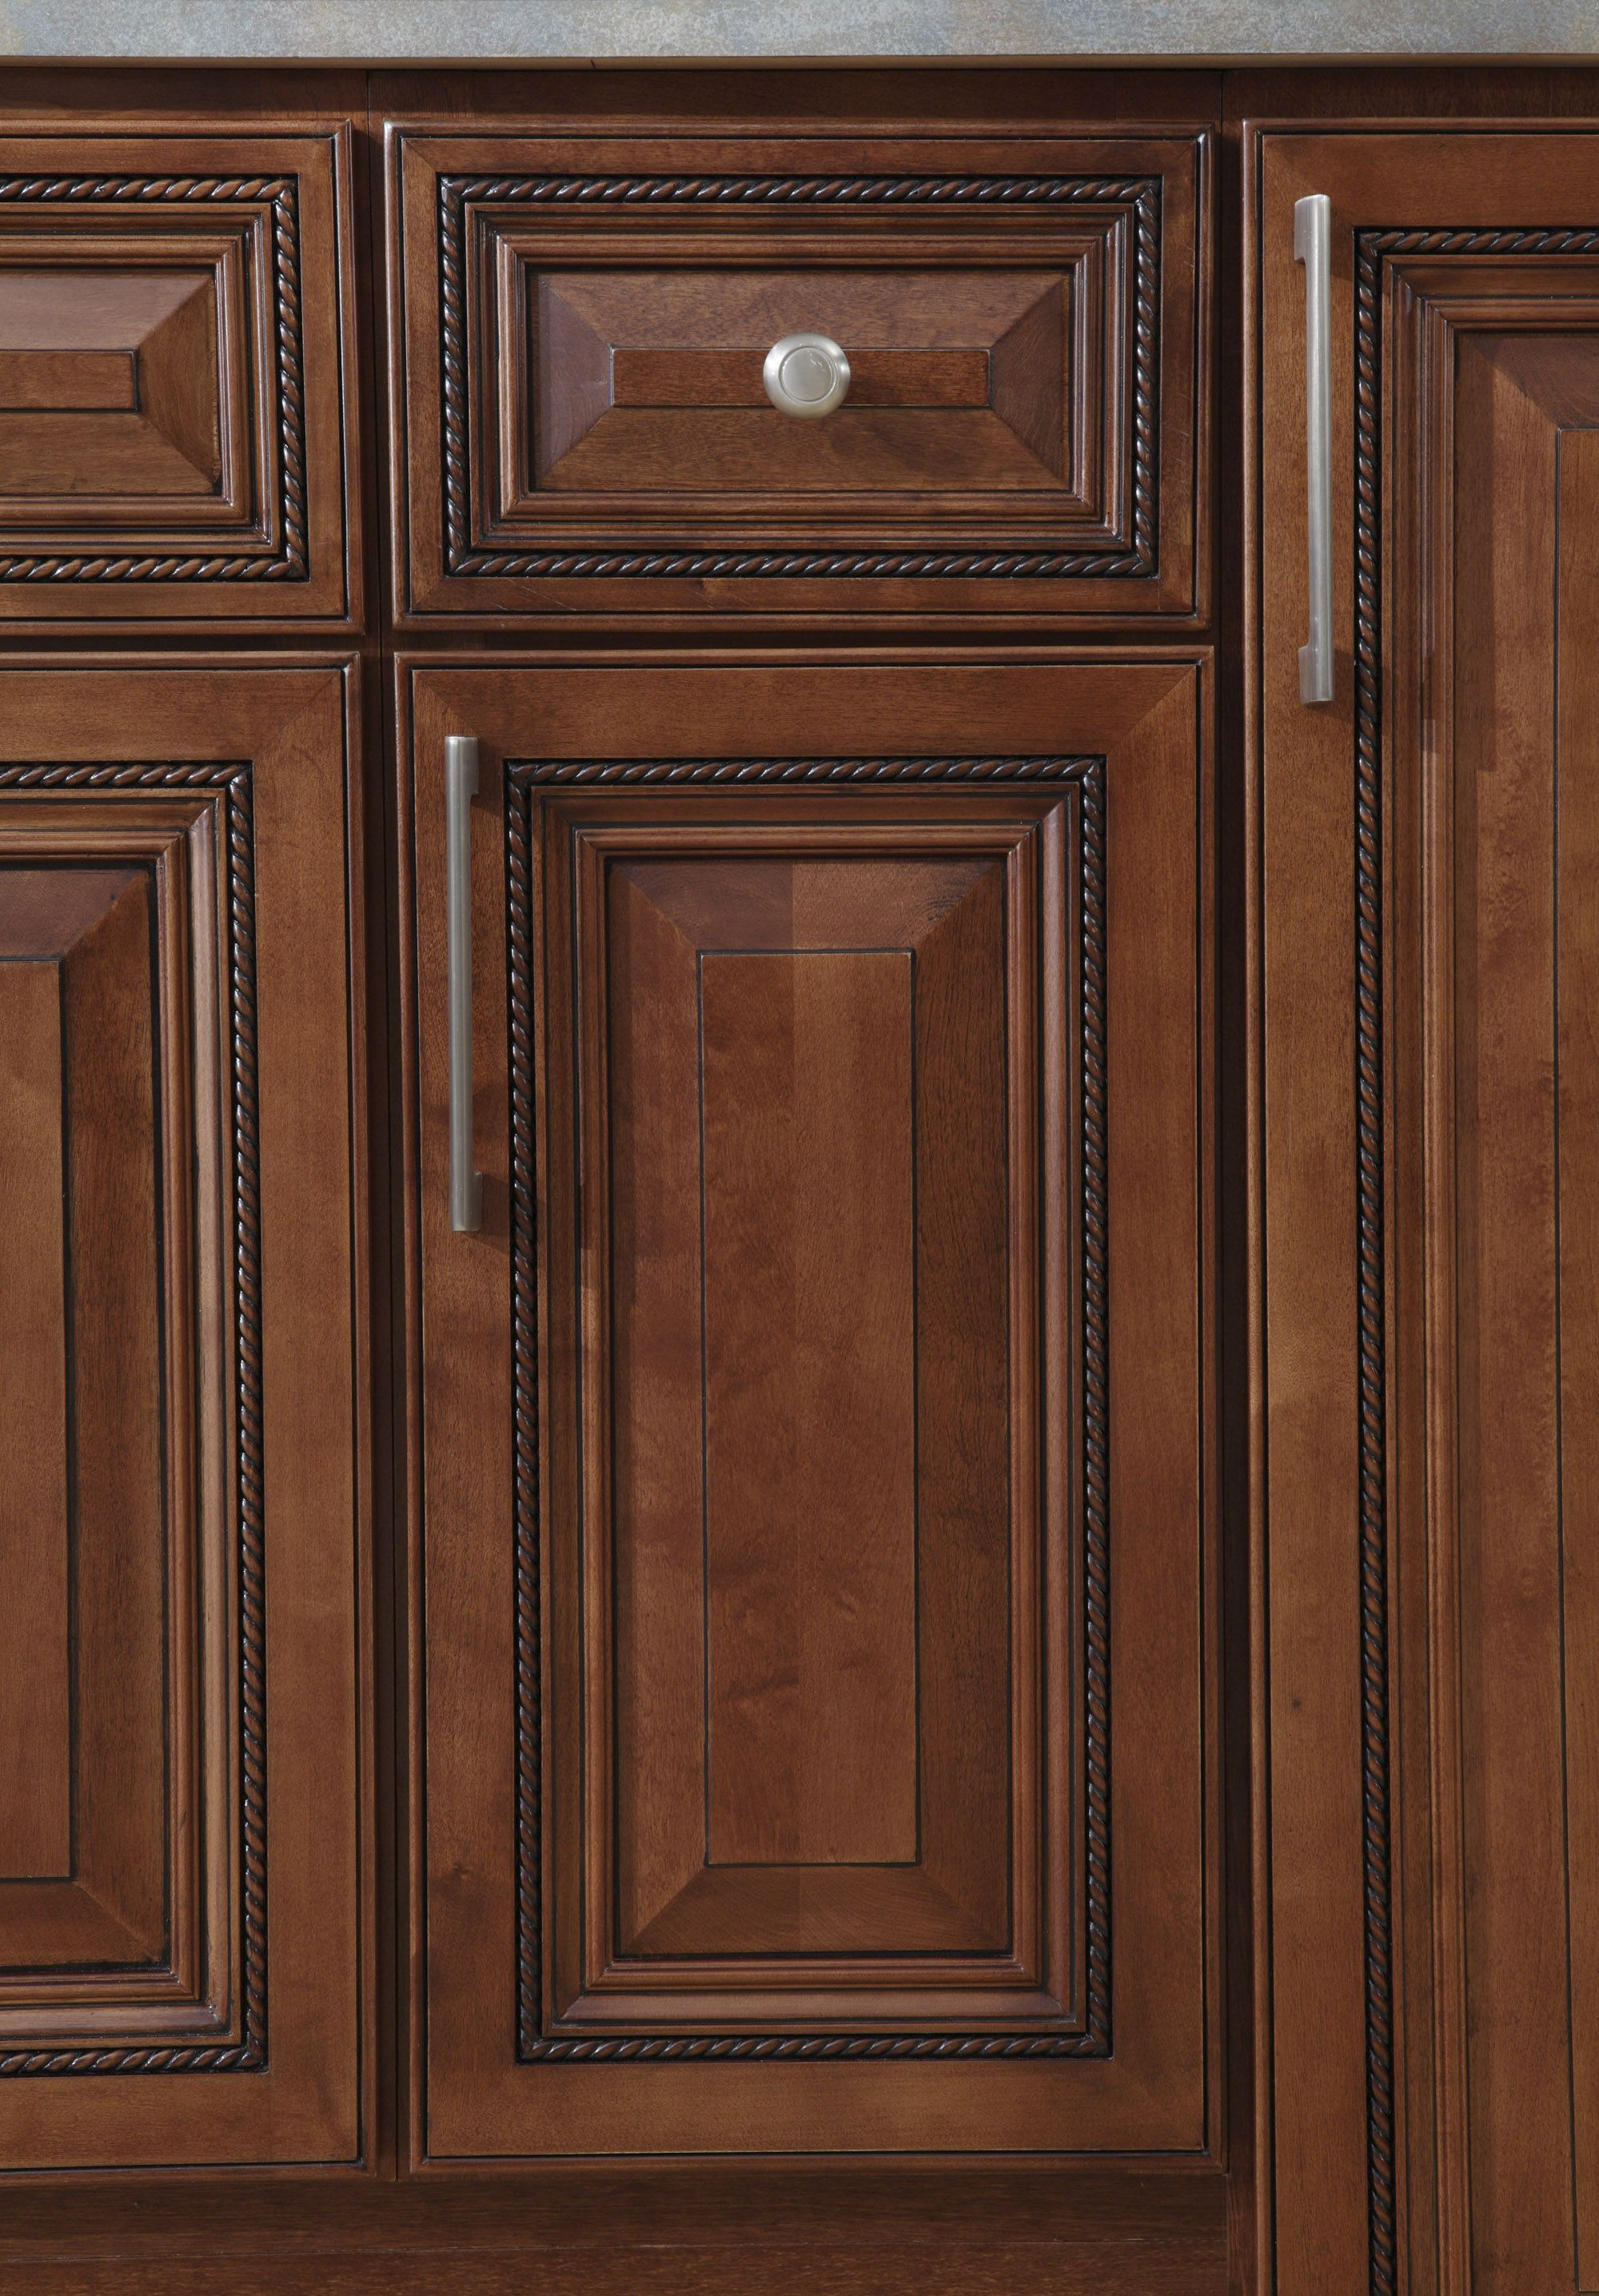 B Jorgsen Co Buckingham Sienna Rope Kitchen Features Soft Closing Drawers Solid Wood Frames And Are Craf Cabinets To Go Handmade Kitchens Kitchen Cabinets